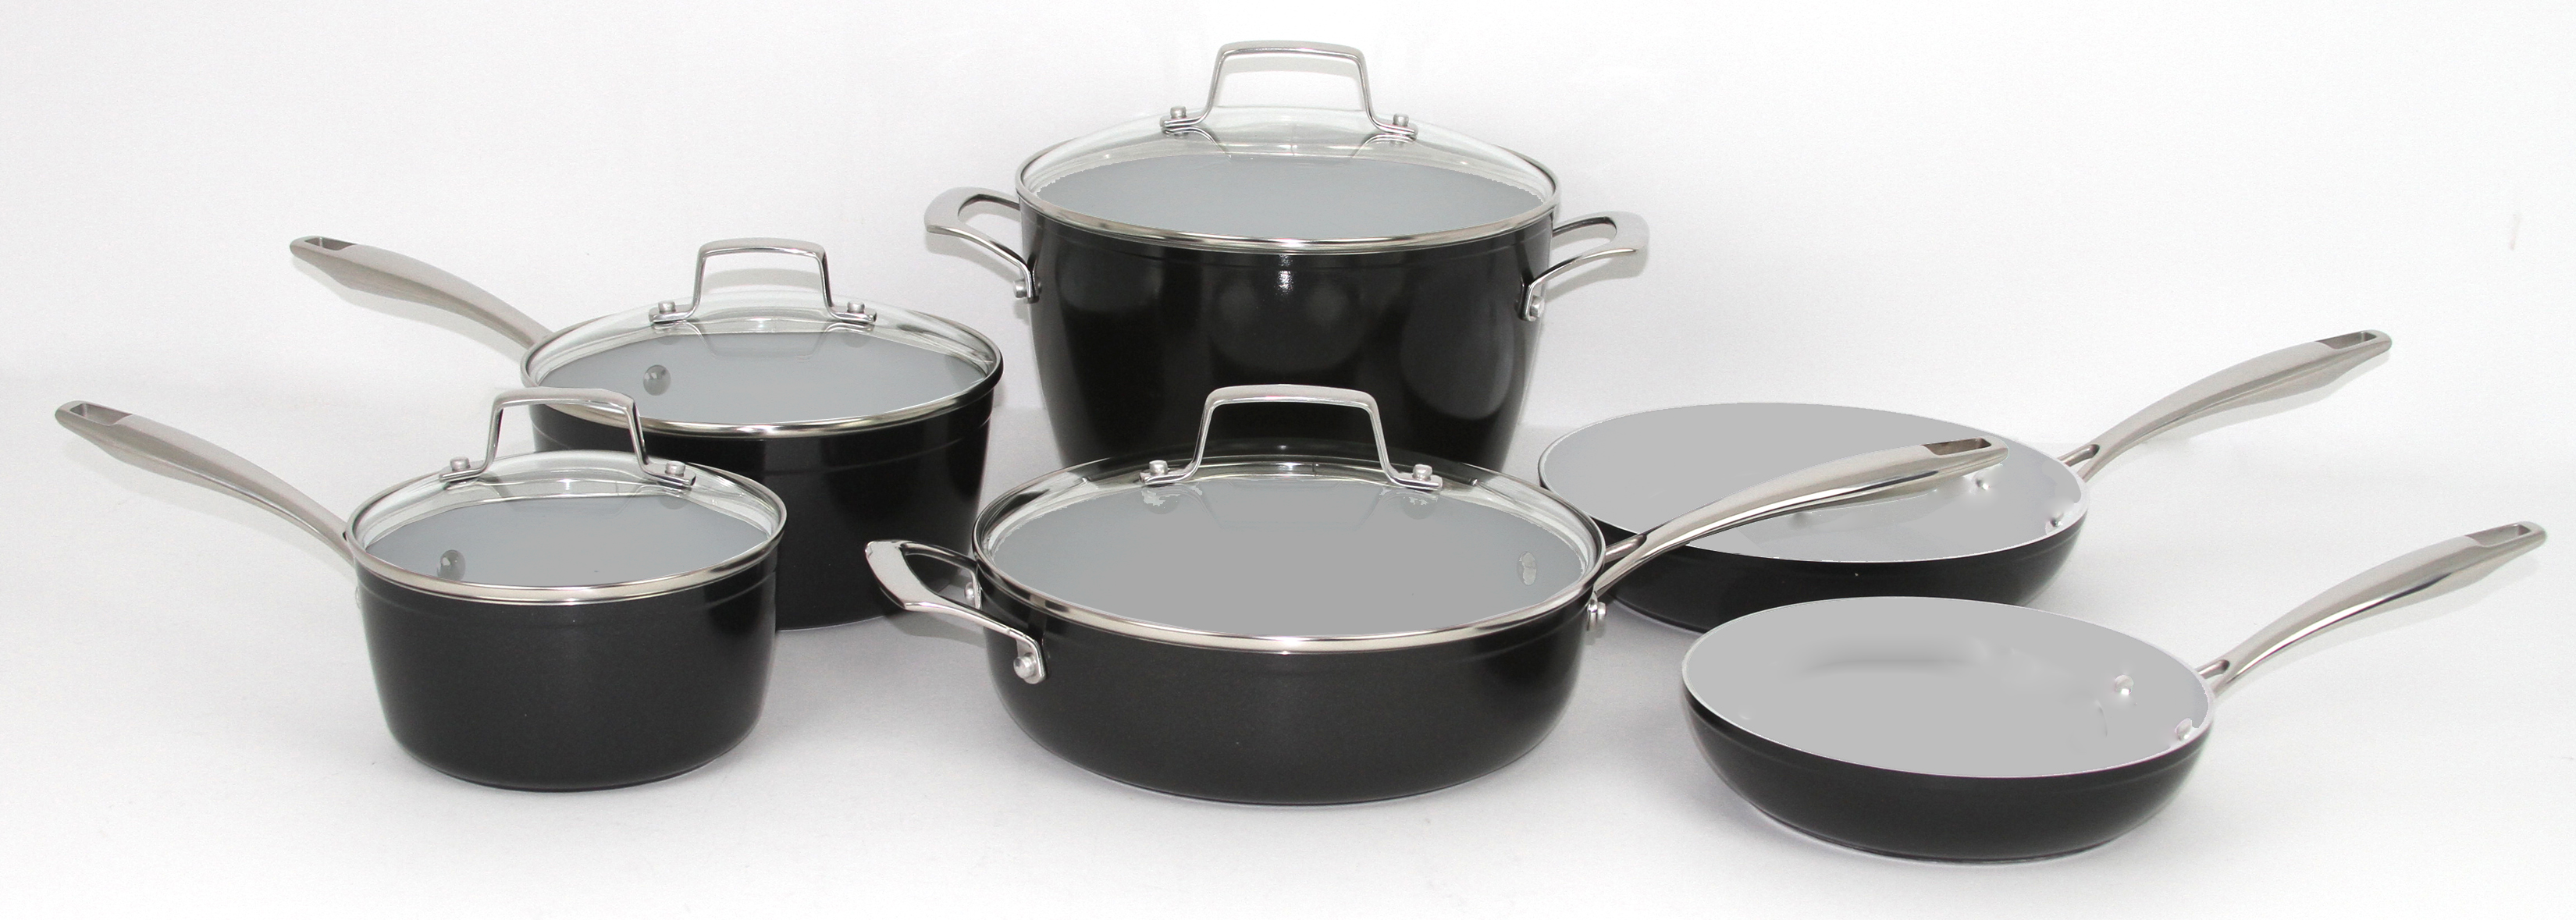 ceramic coated cookware australia ceramic coated cookware